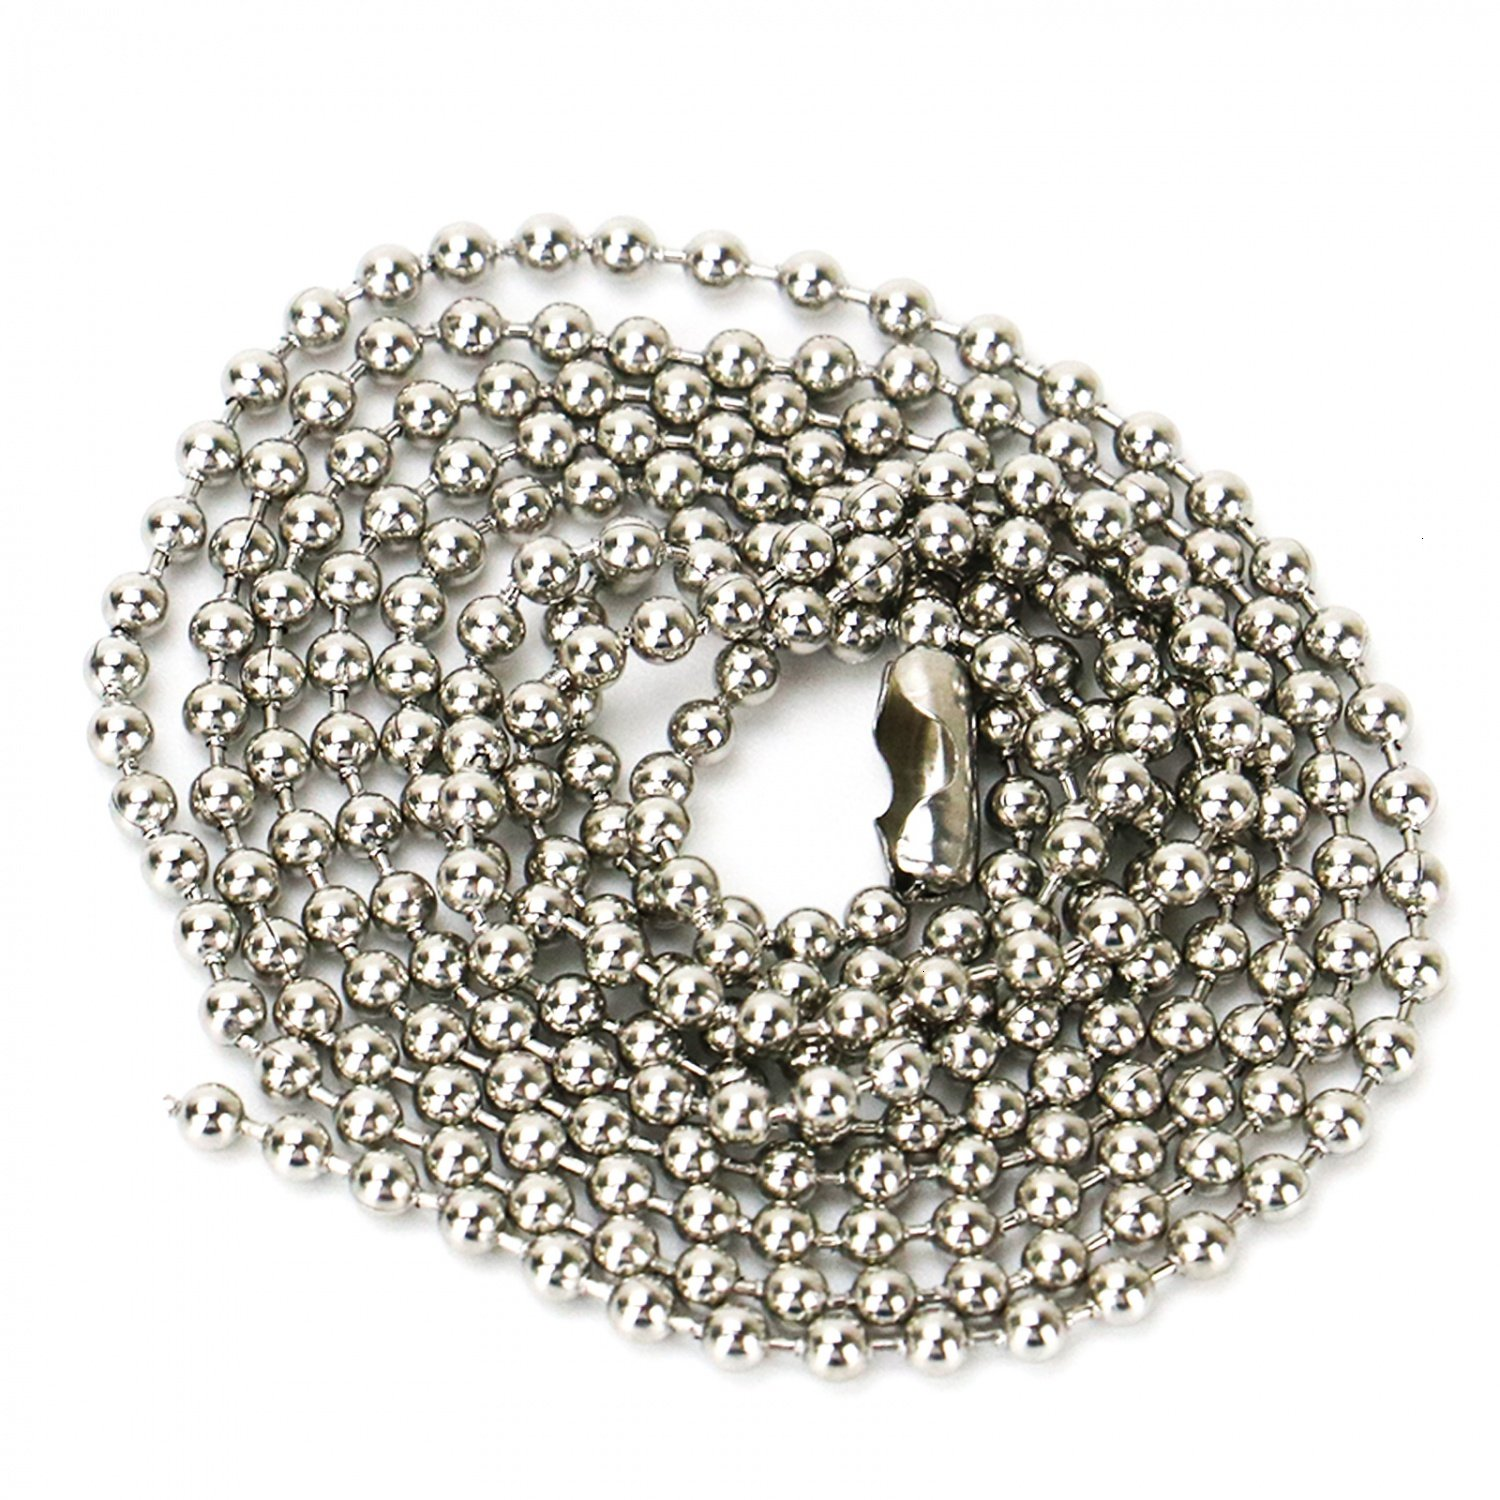 HUELE 5 Pcs Stainless Steel Ball Chains Beaded Necklaces Connectors ID Badge Chain 3 Ft